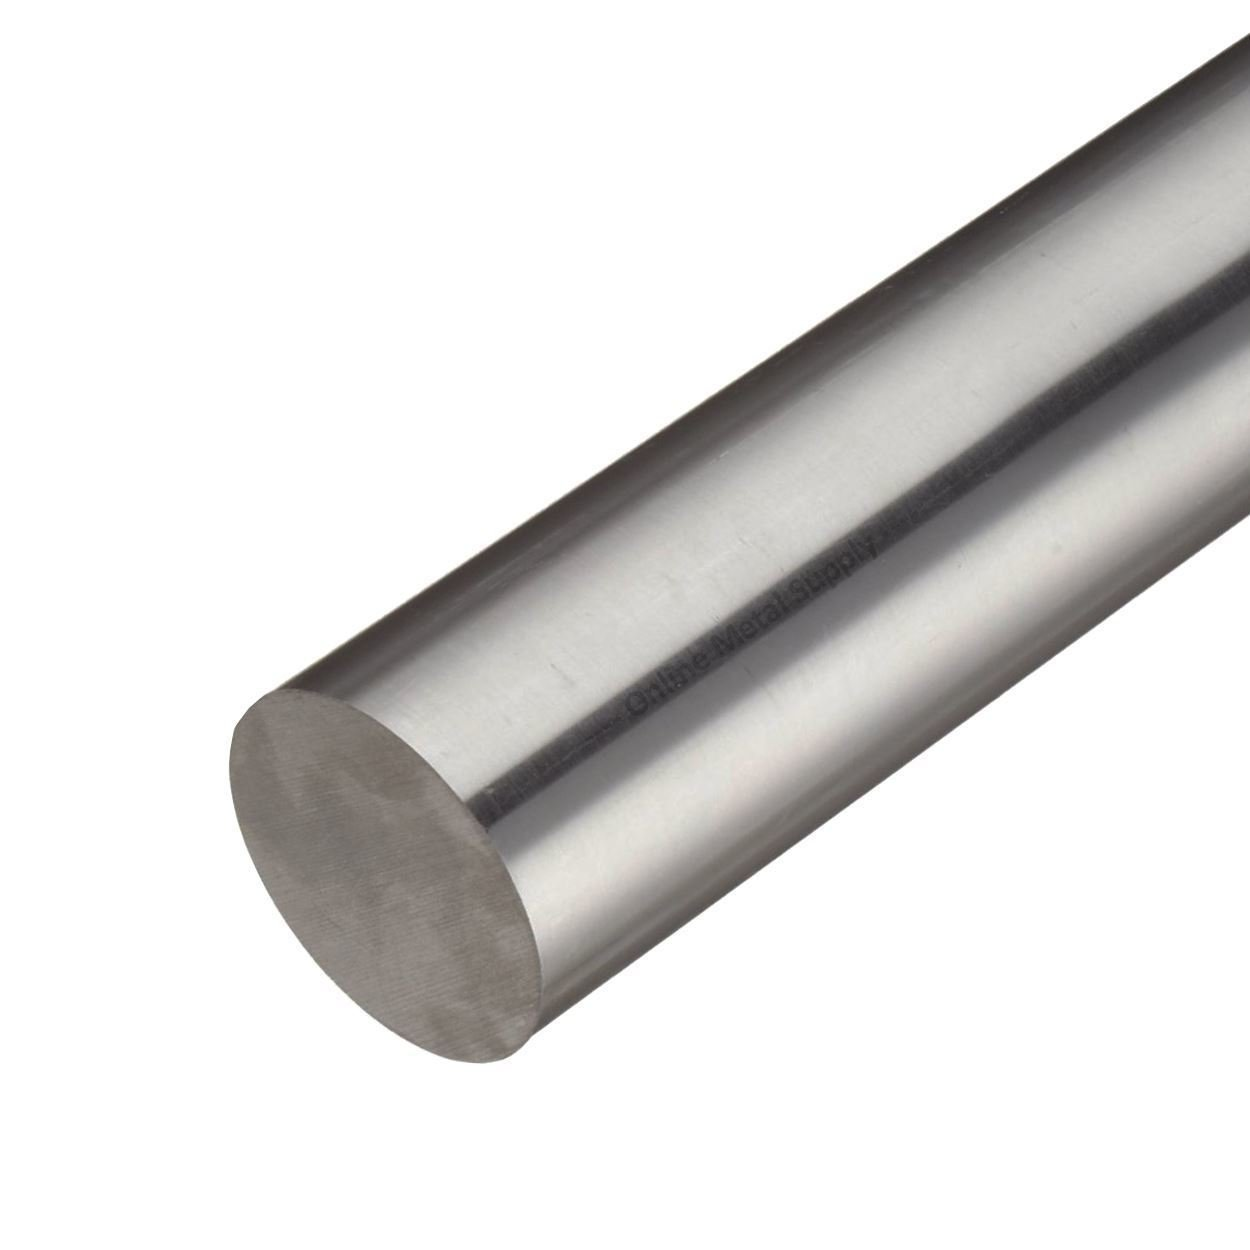 Online Metal Supply 17-4 Stainless Steel Round Rod, 1.750 (1-3/4 inch) x 12 inches by Online Metal Supply